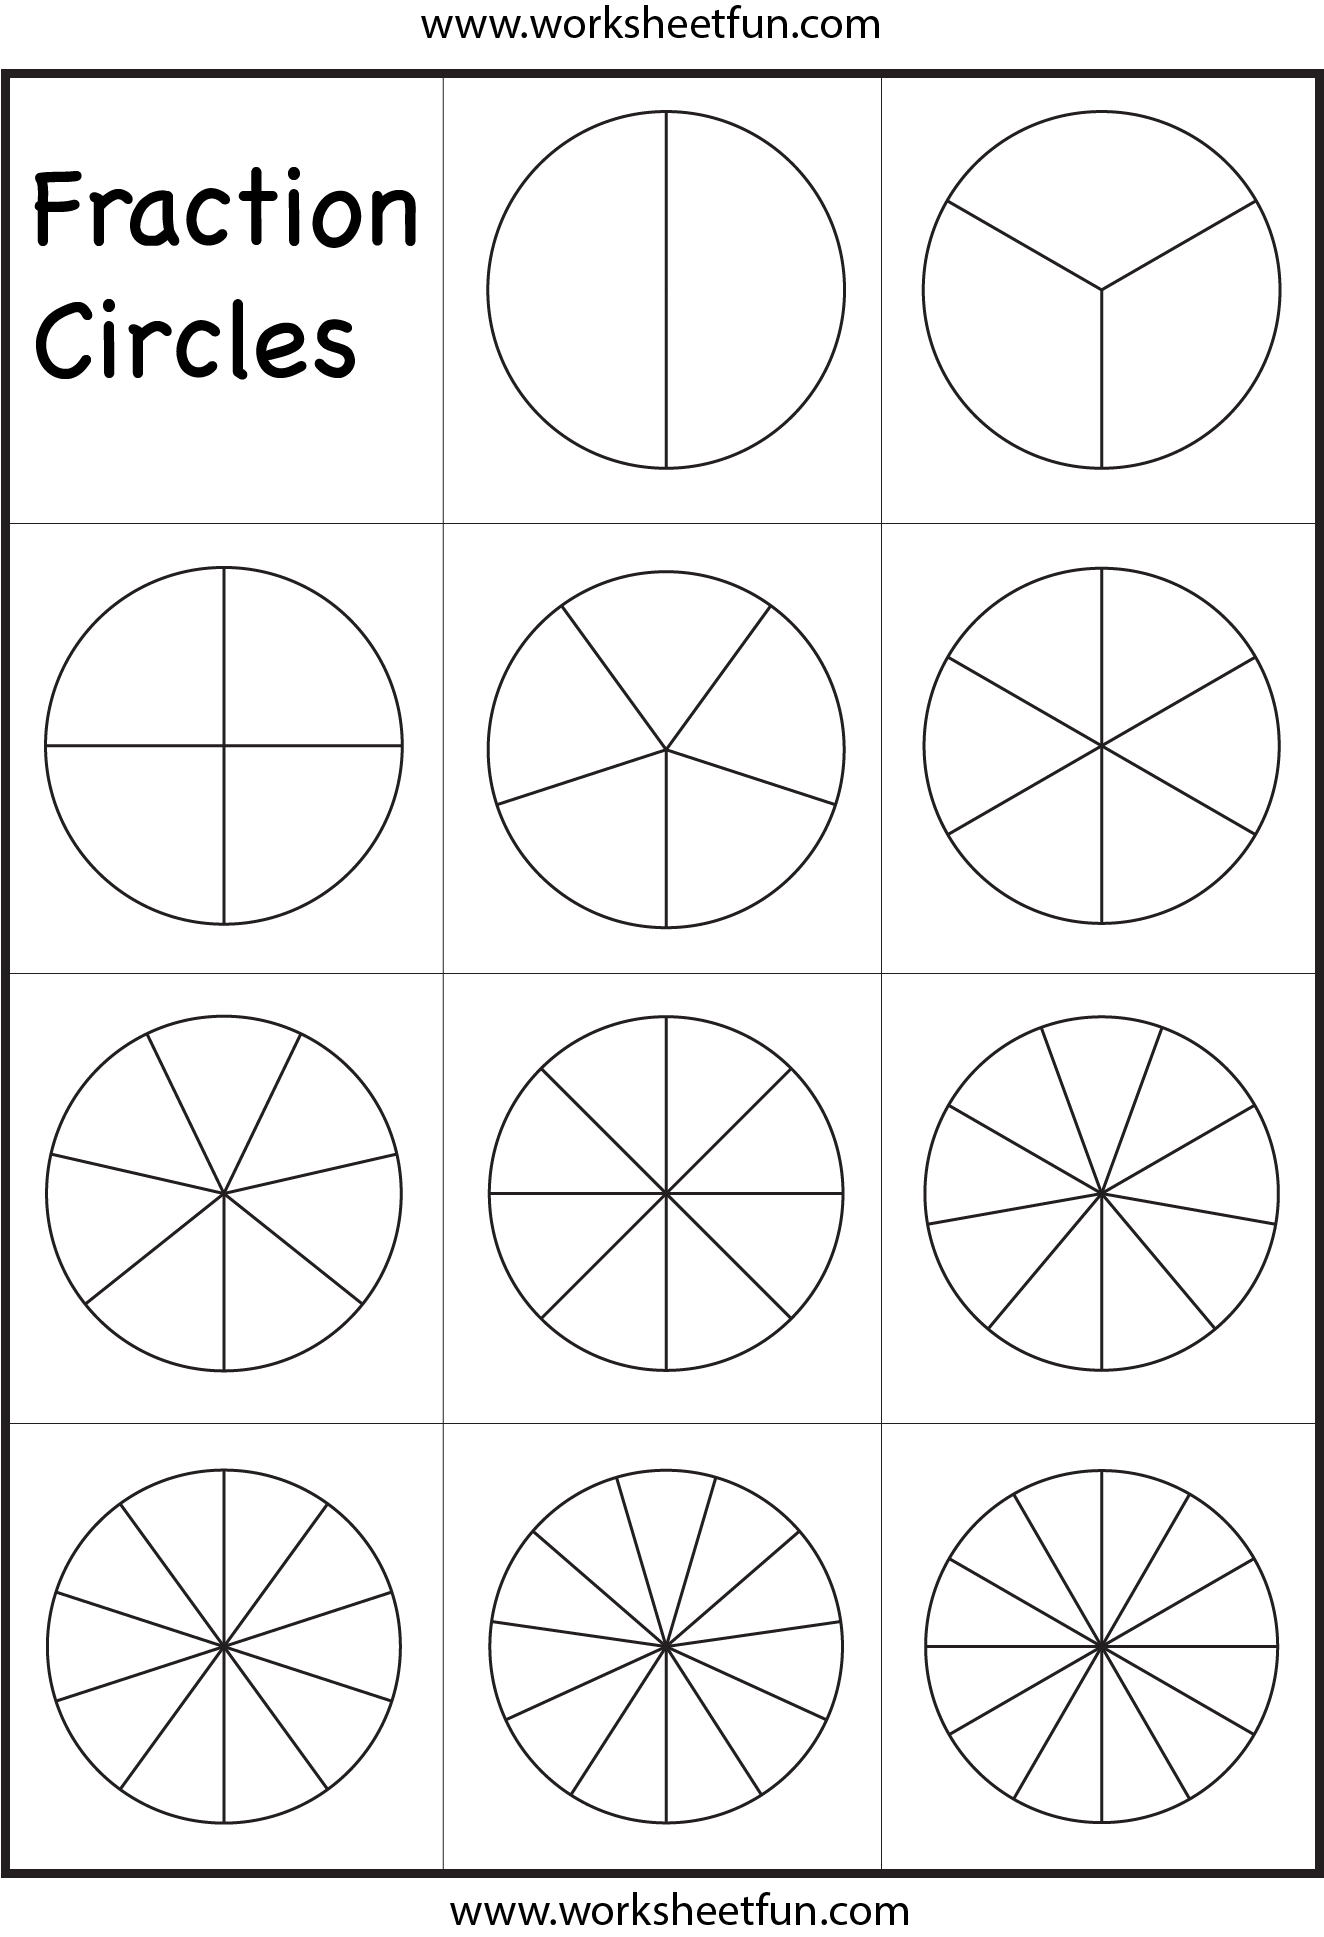 fraction circles worksheet  fraction worksheets  pinterest  math  fraction circles worksheet